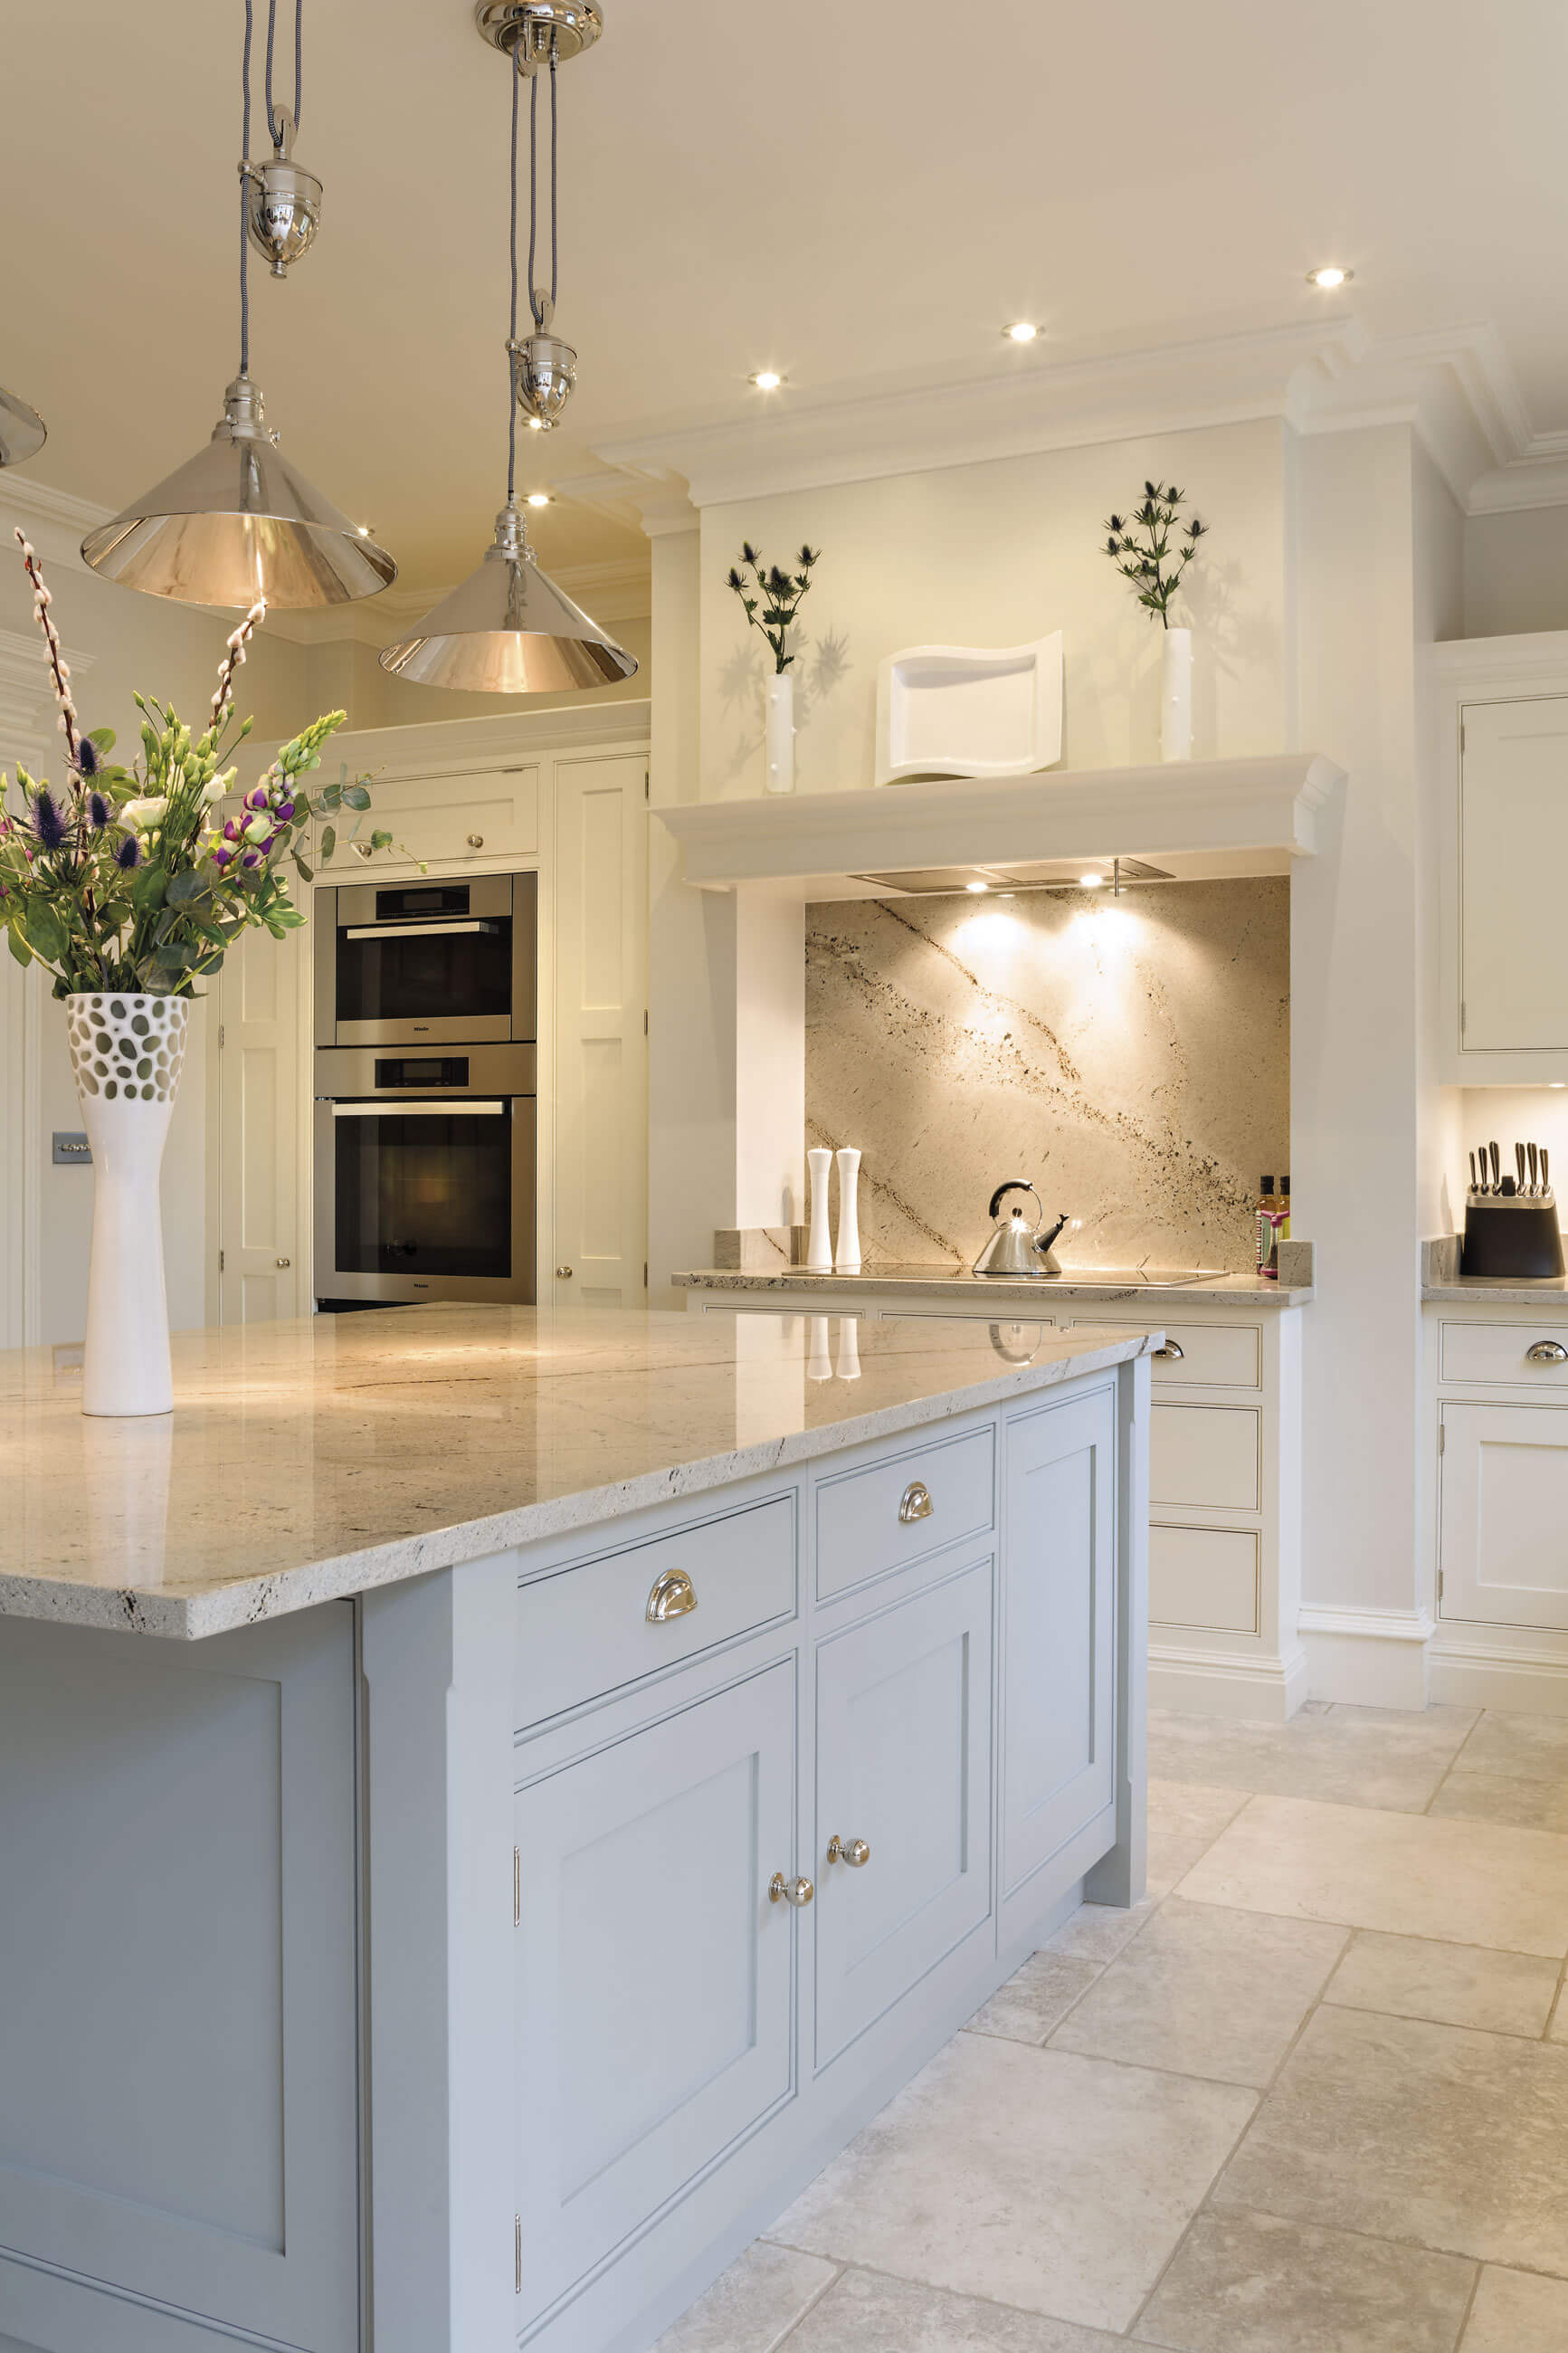 Open Plan Kitchen | Tom Howley